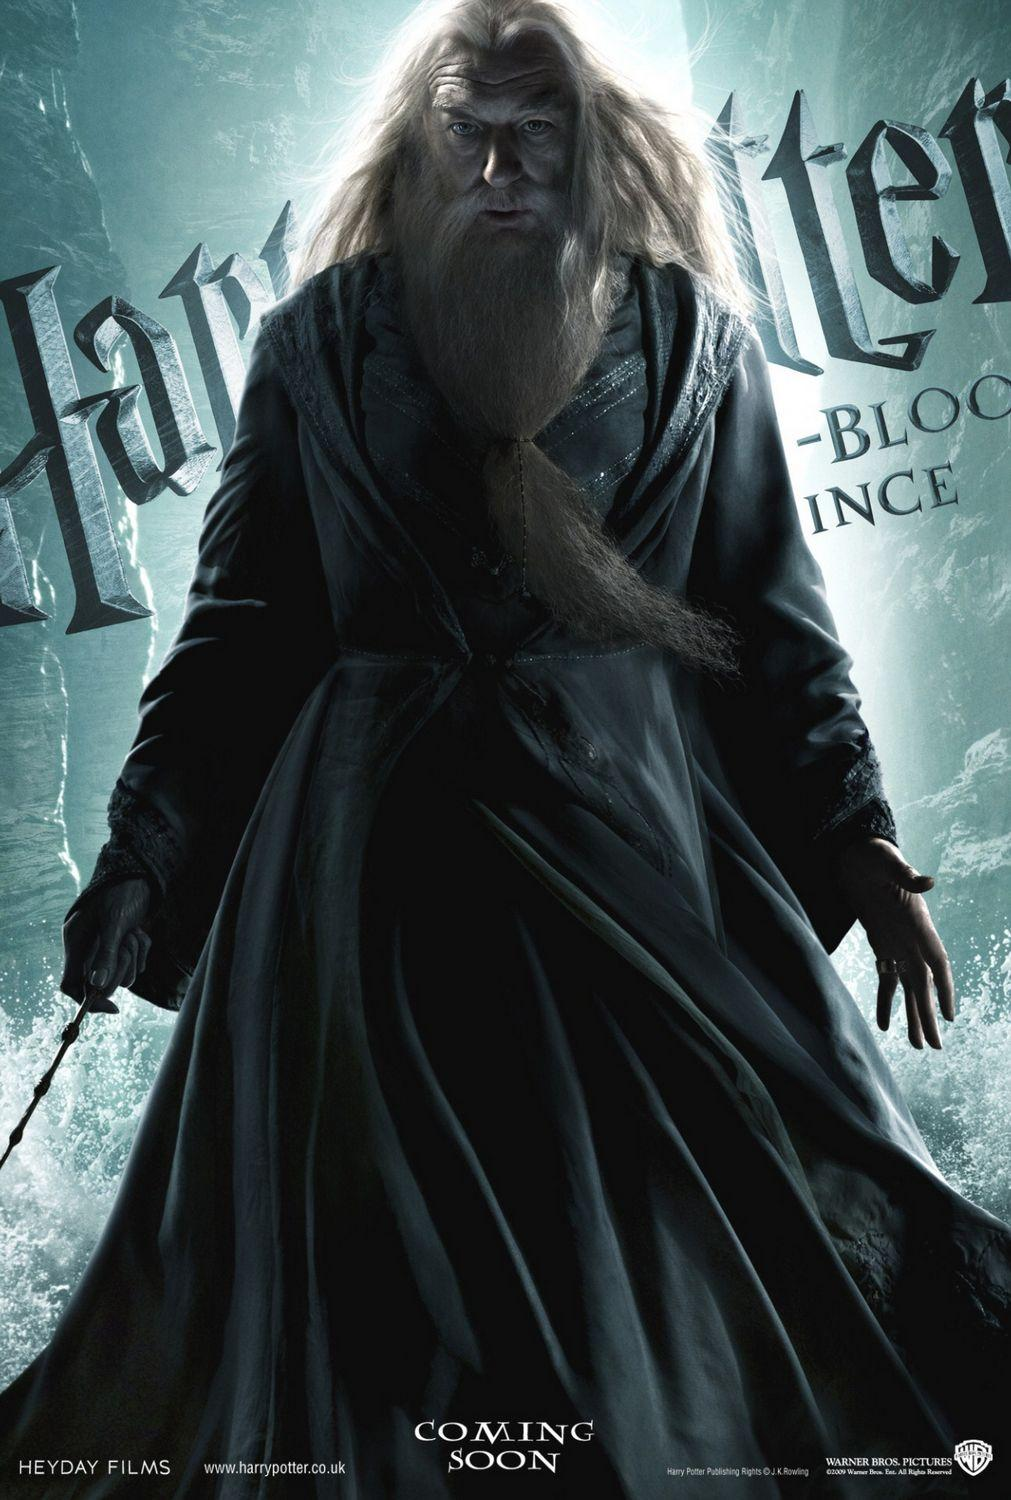 Harry Potter et le Prince de Sang-Mêlé: Extra Large Image Movie Poster - Internet Movie Poster Gallery Prix